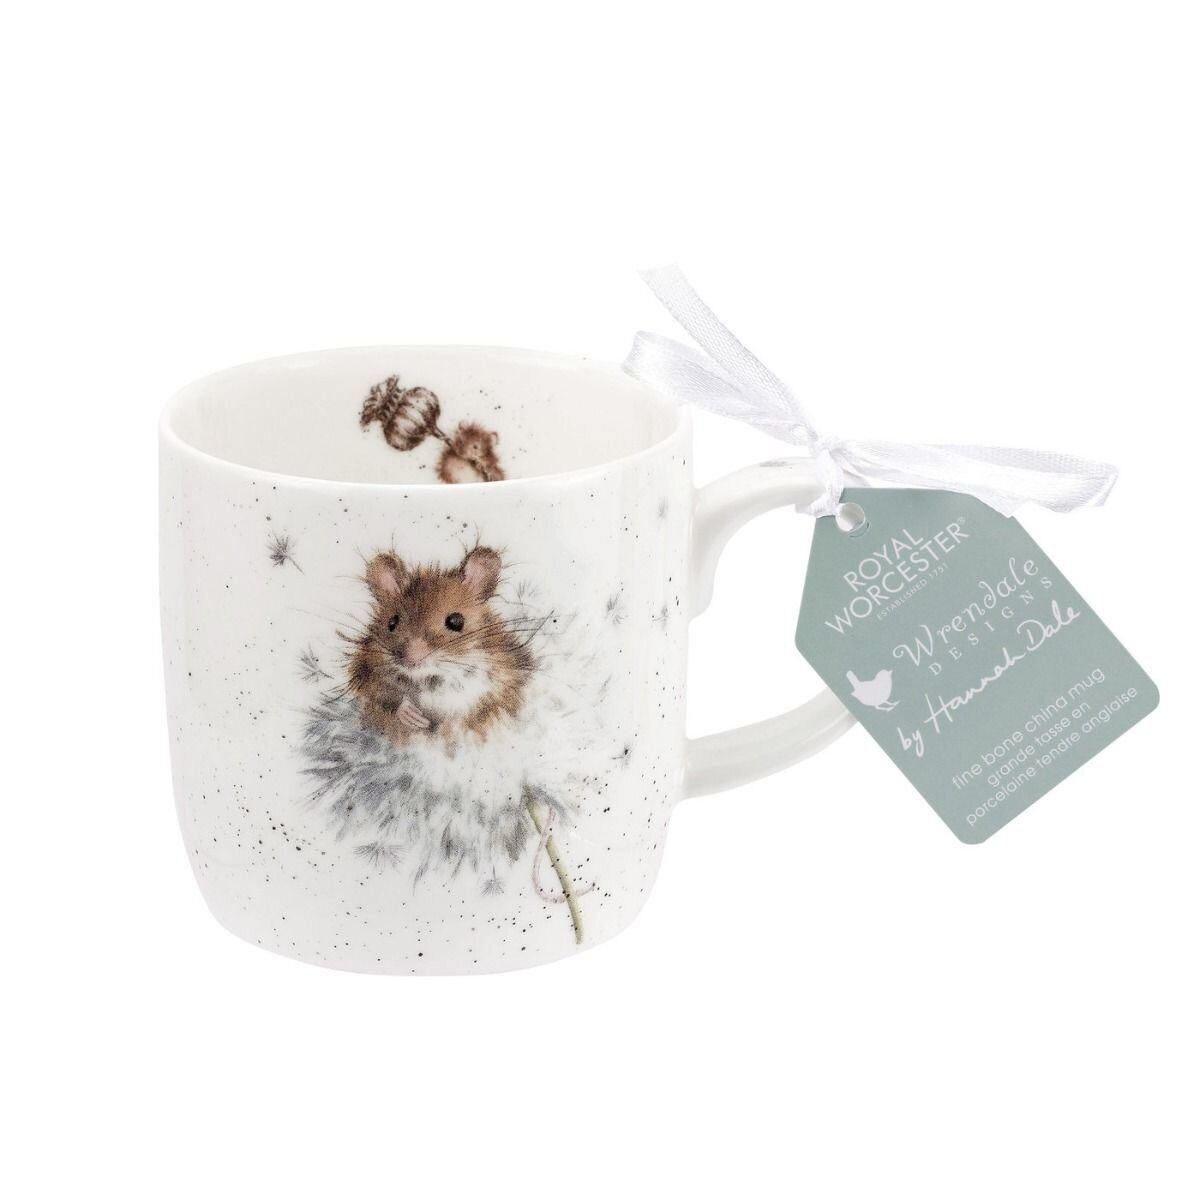 Royal Worcester Wrendale Designs Country Mice Fine Bone China Mug);